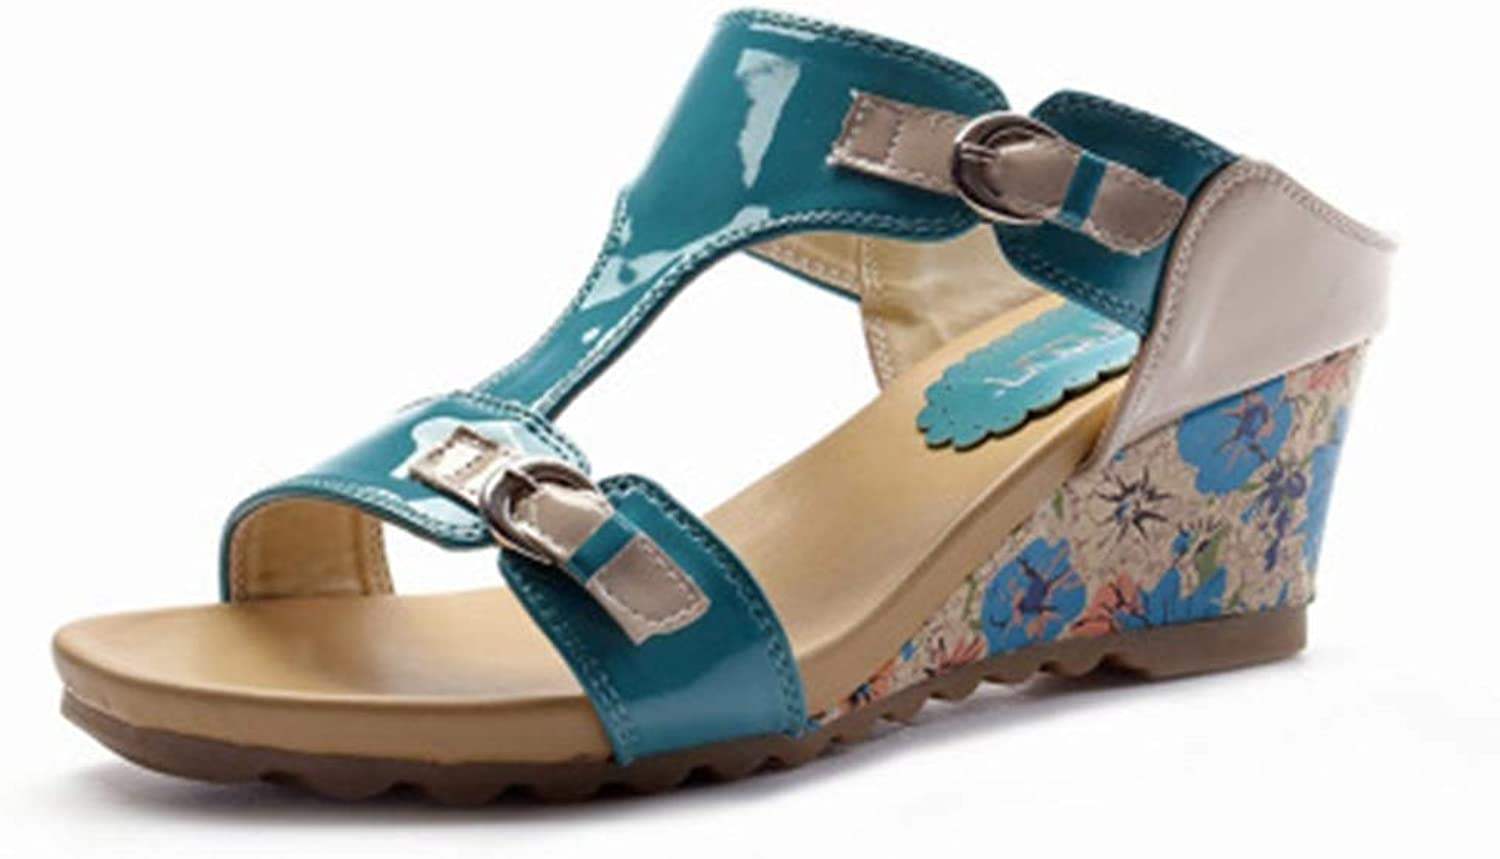 T-JULY Ladies Slippers Women Sandals Female Wedges Med Heels Slides Casual shoes with Buckle Decoration